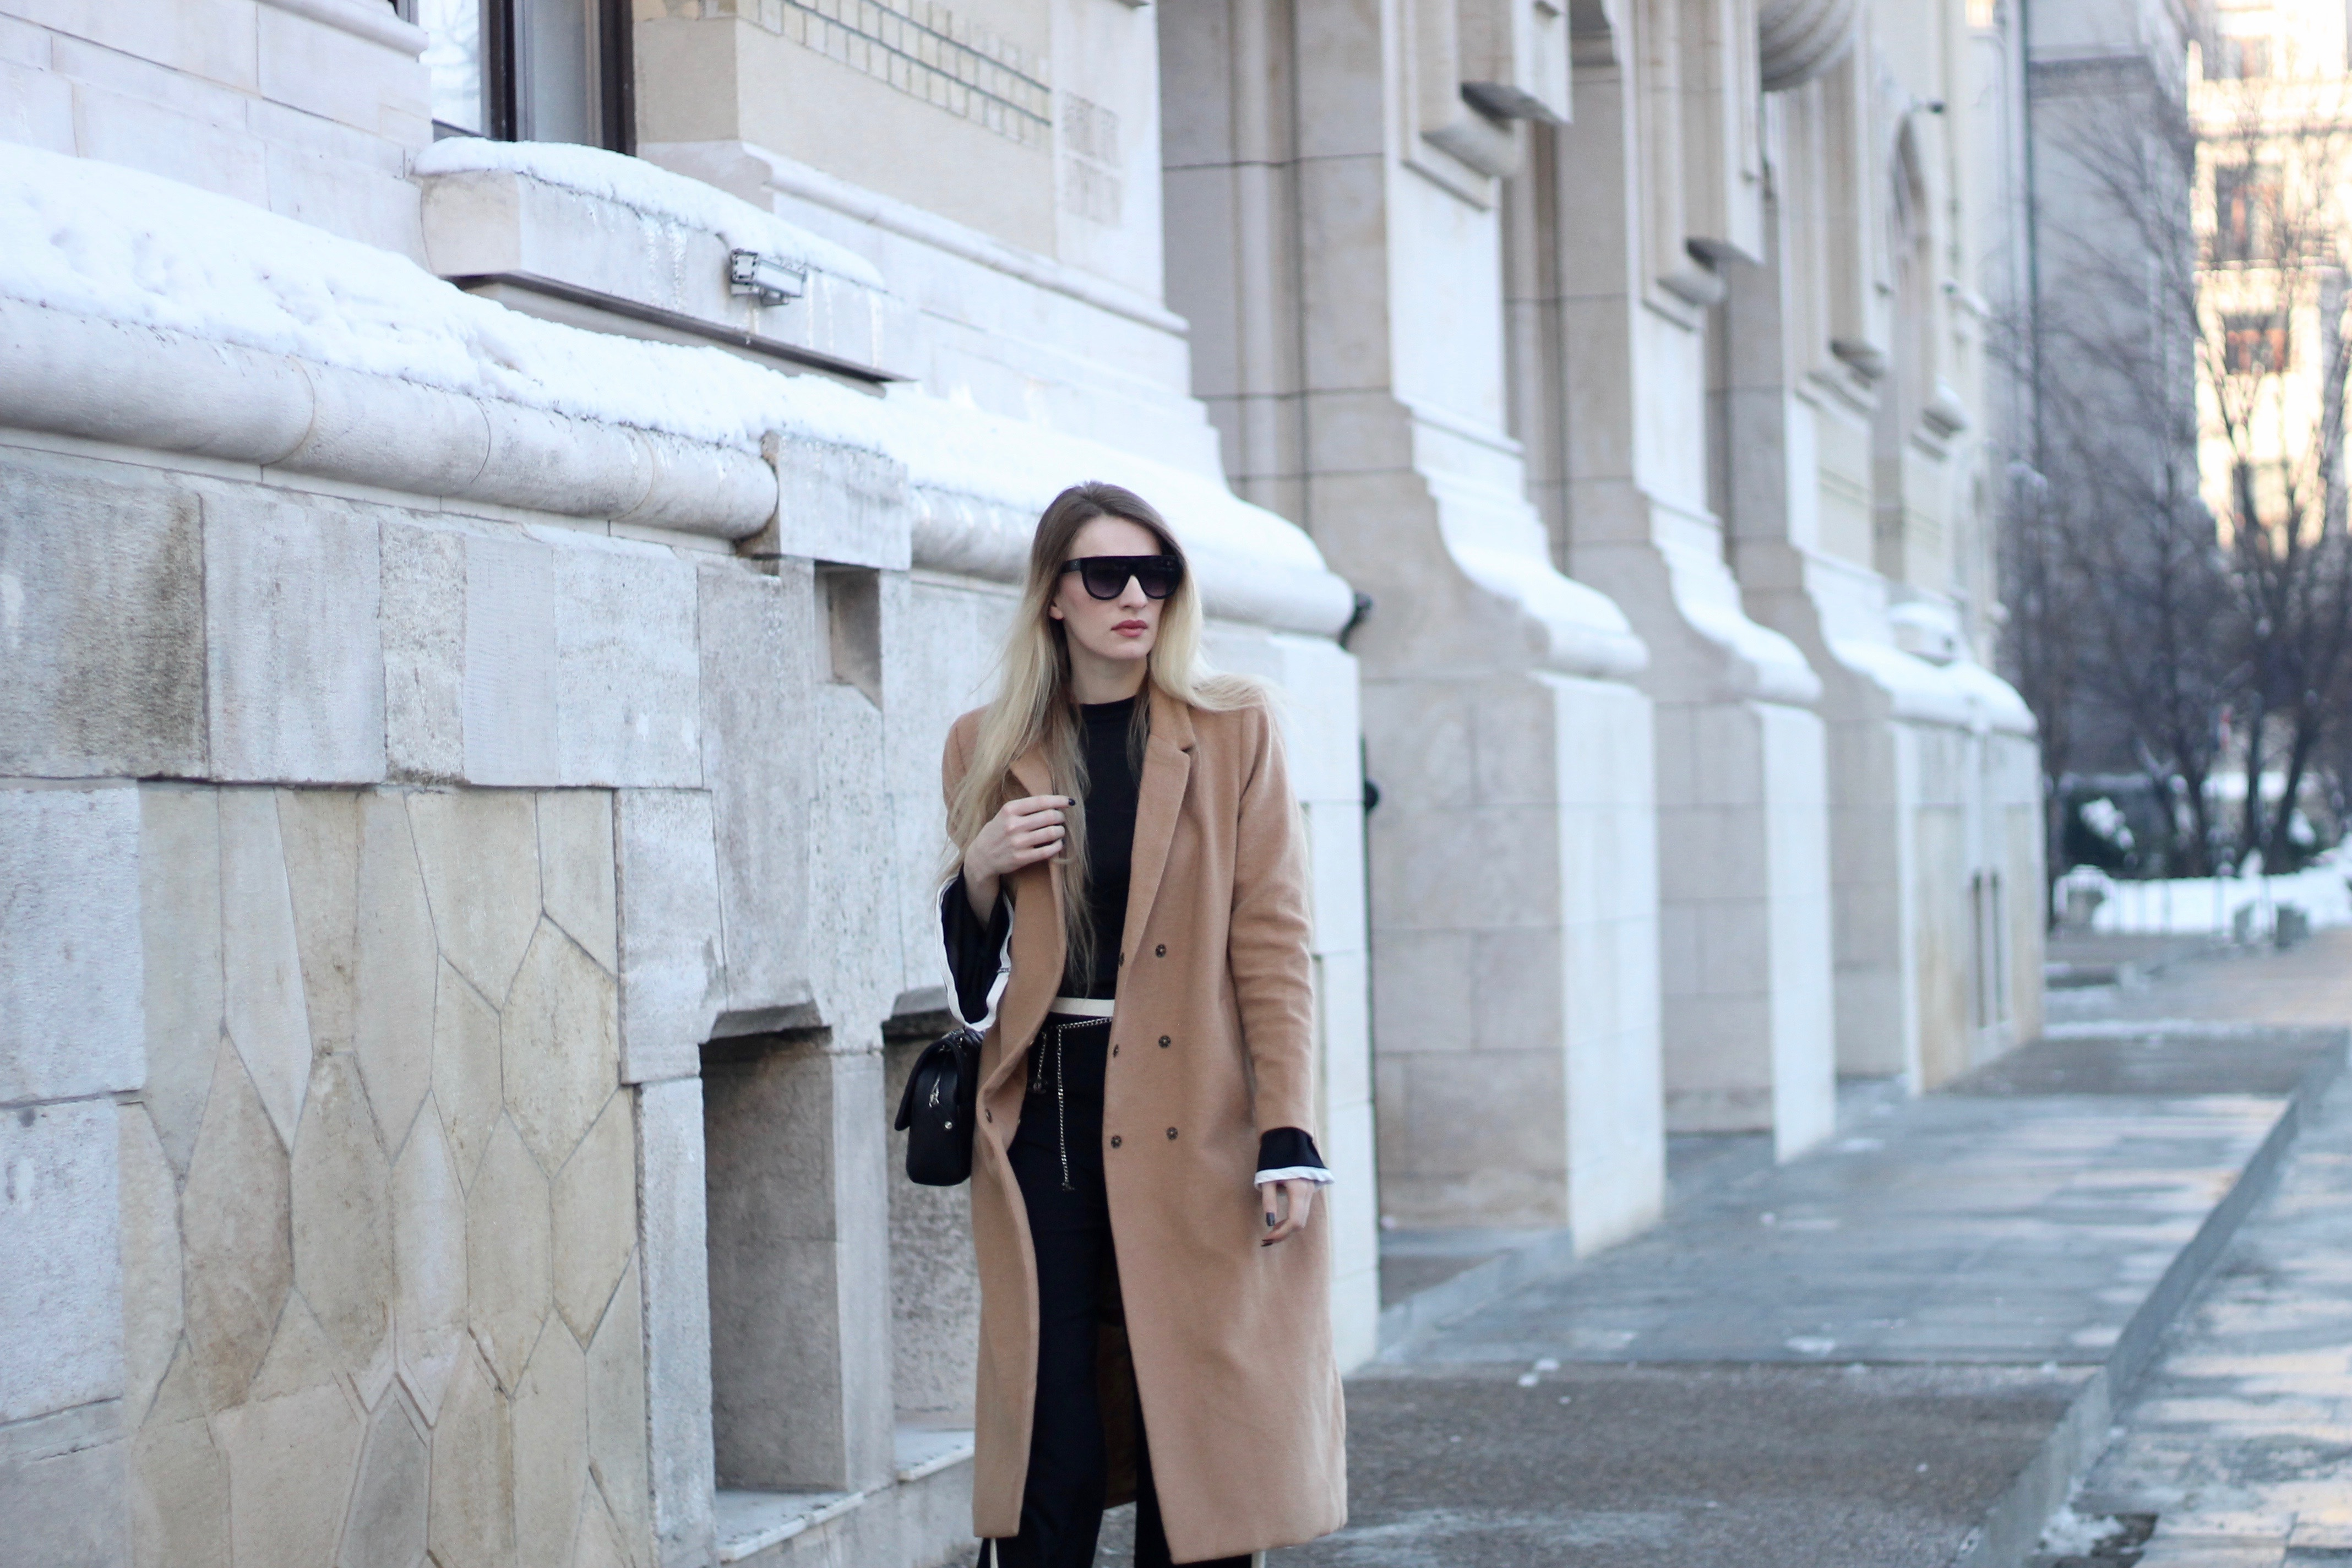 MON MODE | Fashion Blogger | Fashion Trends | Classic Chanel Outfit | Classic Flap Bag | Travel Blogger | Bucharest